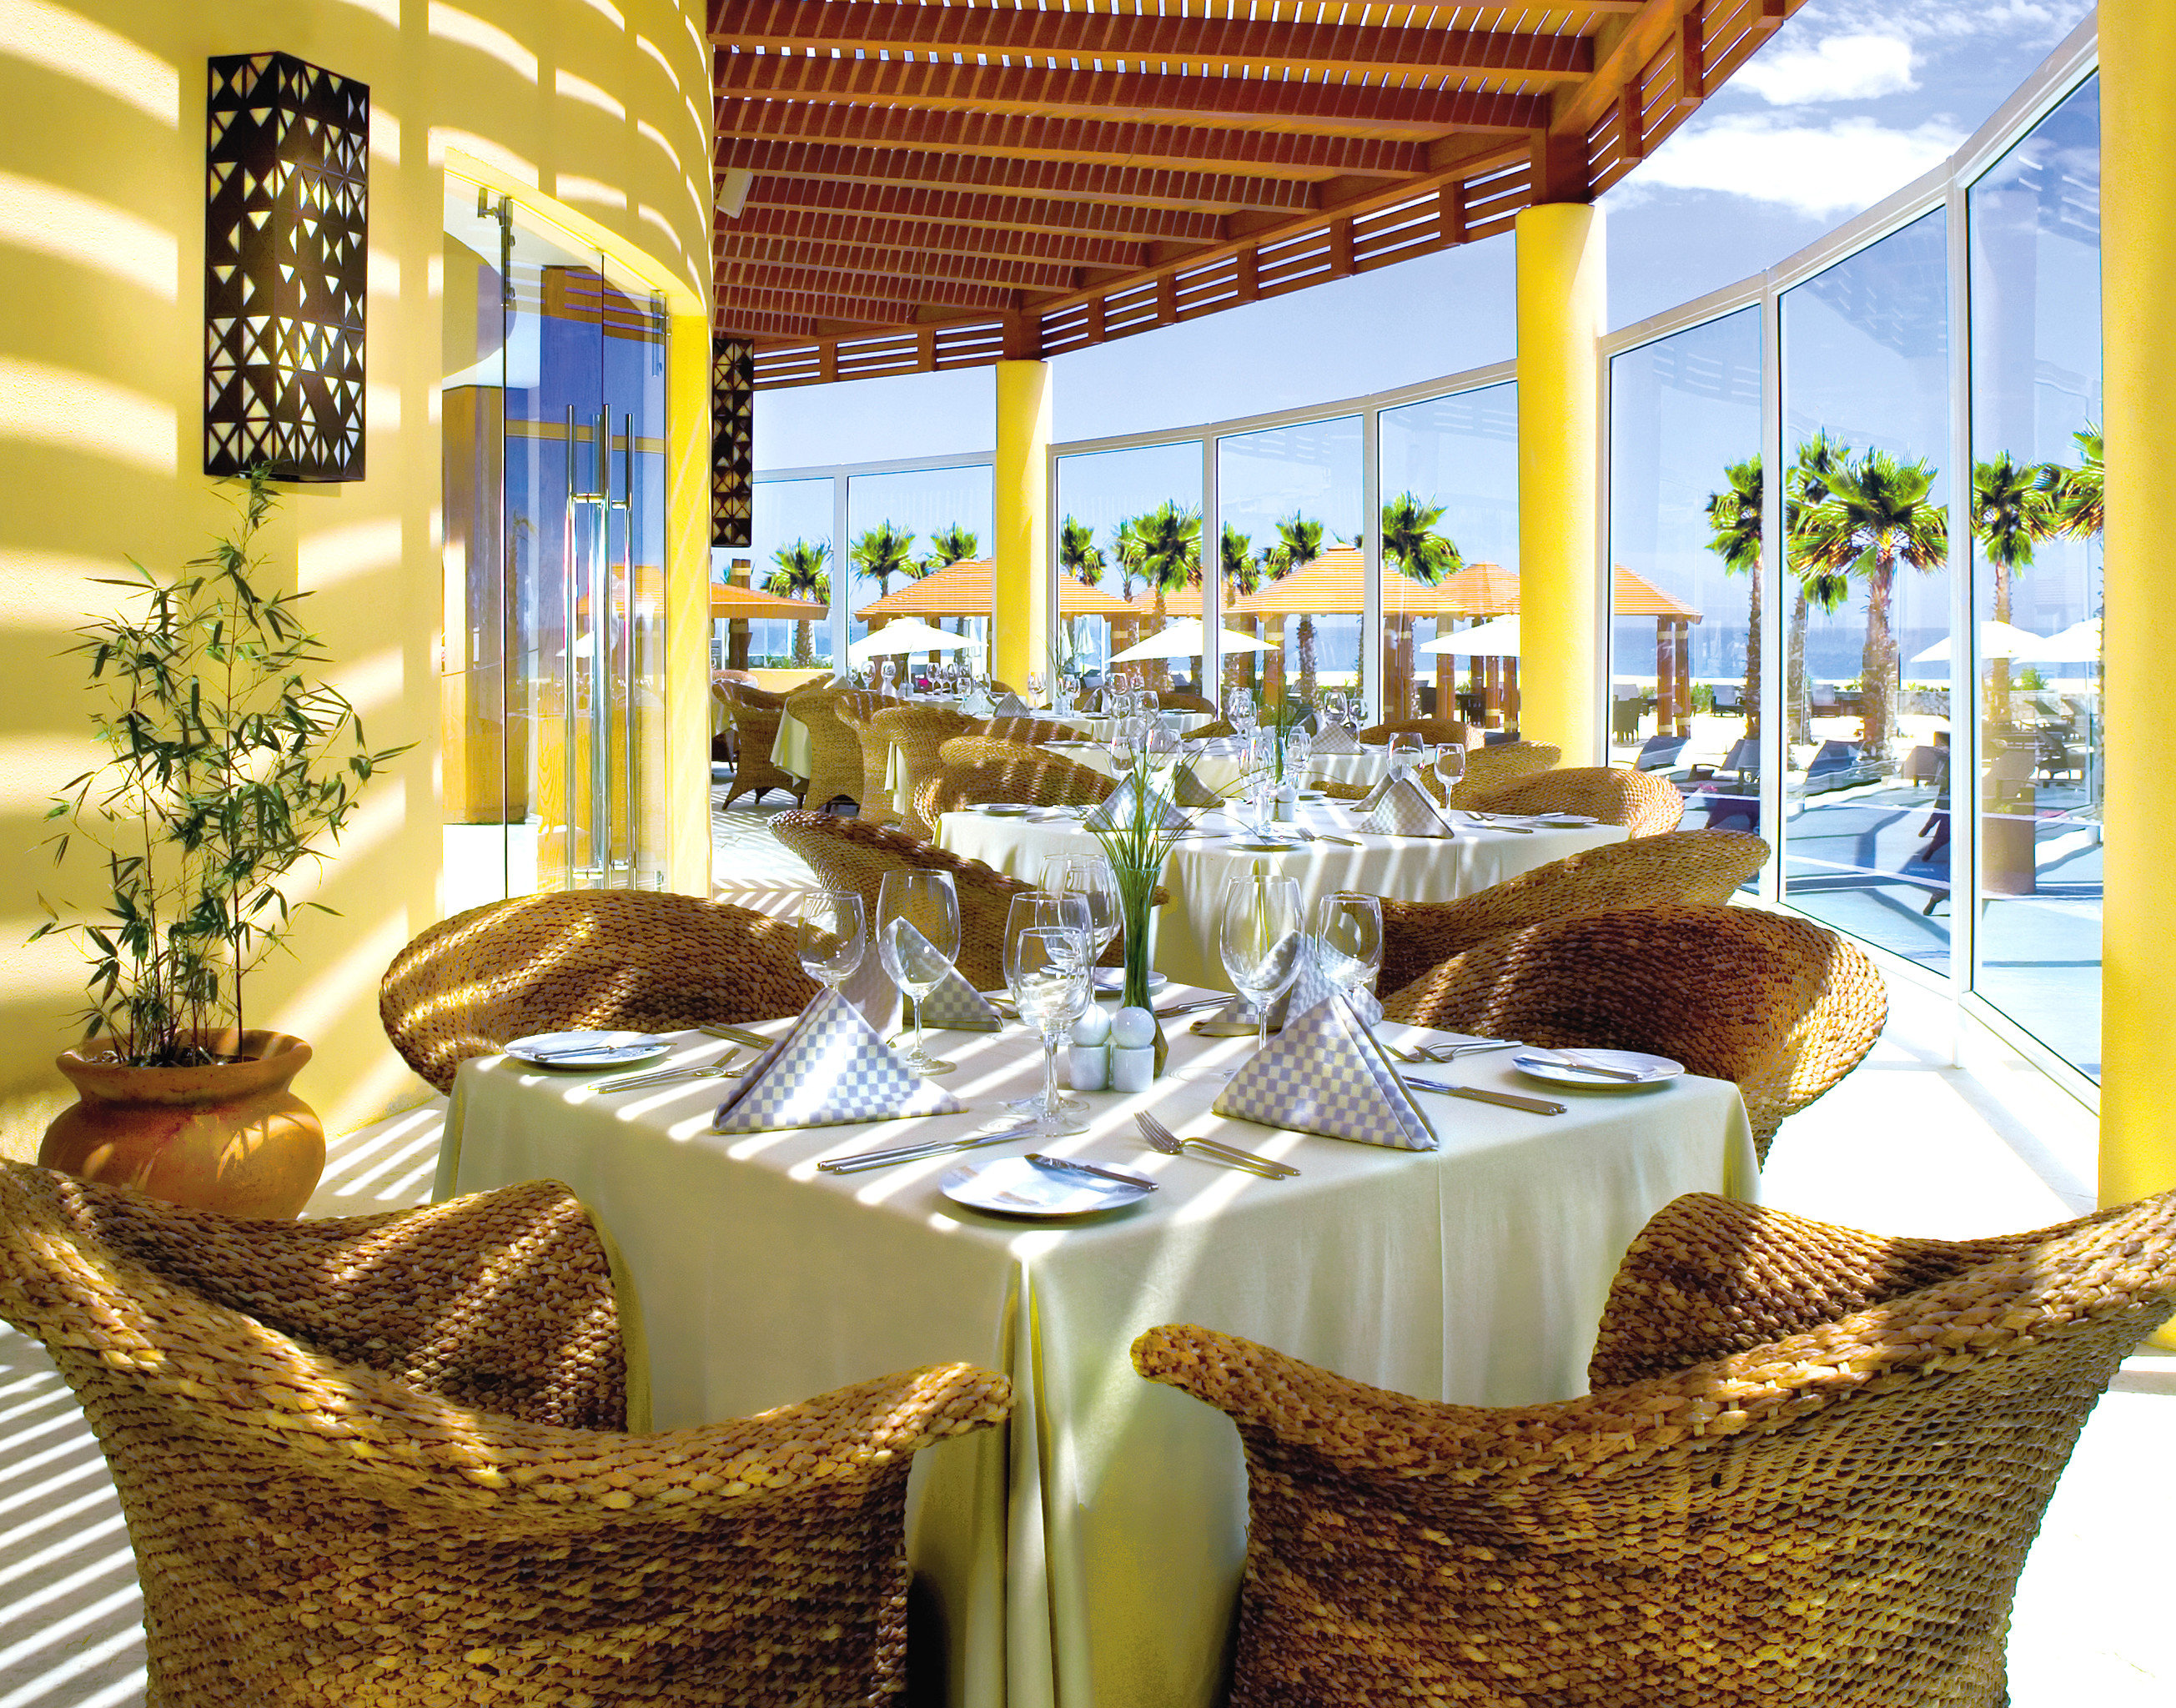 Adult-only All-inclusive Dining Drink Eat Honeymoon Hotels Romance Romantic Tropical Waterfront restaurant home function hall Resort dining table